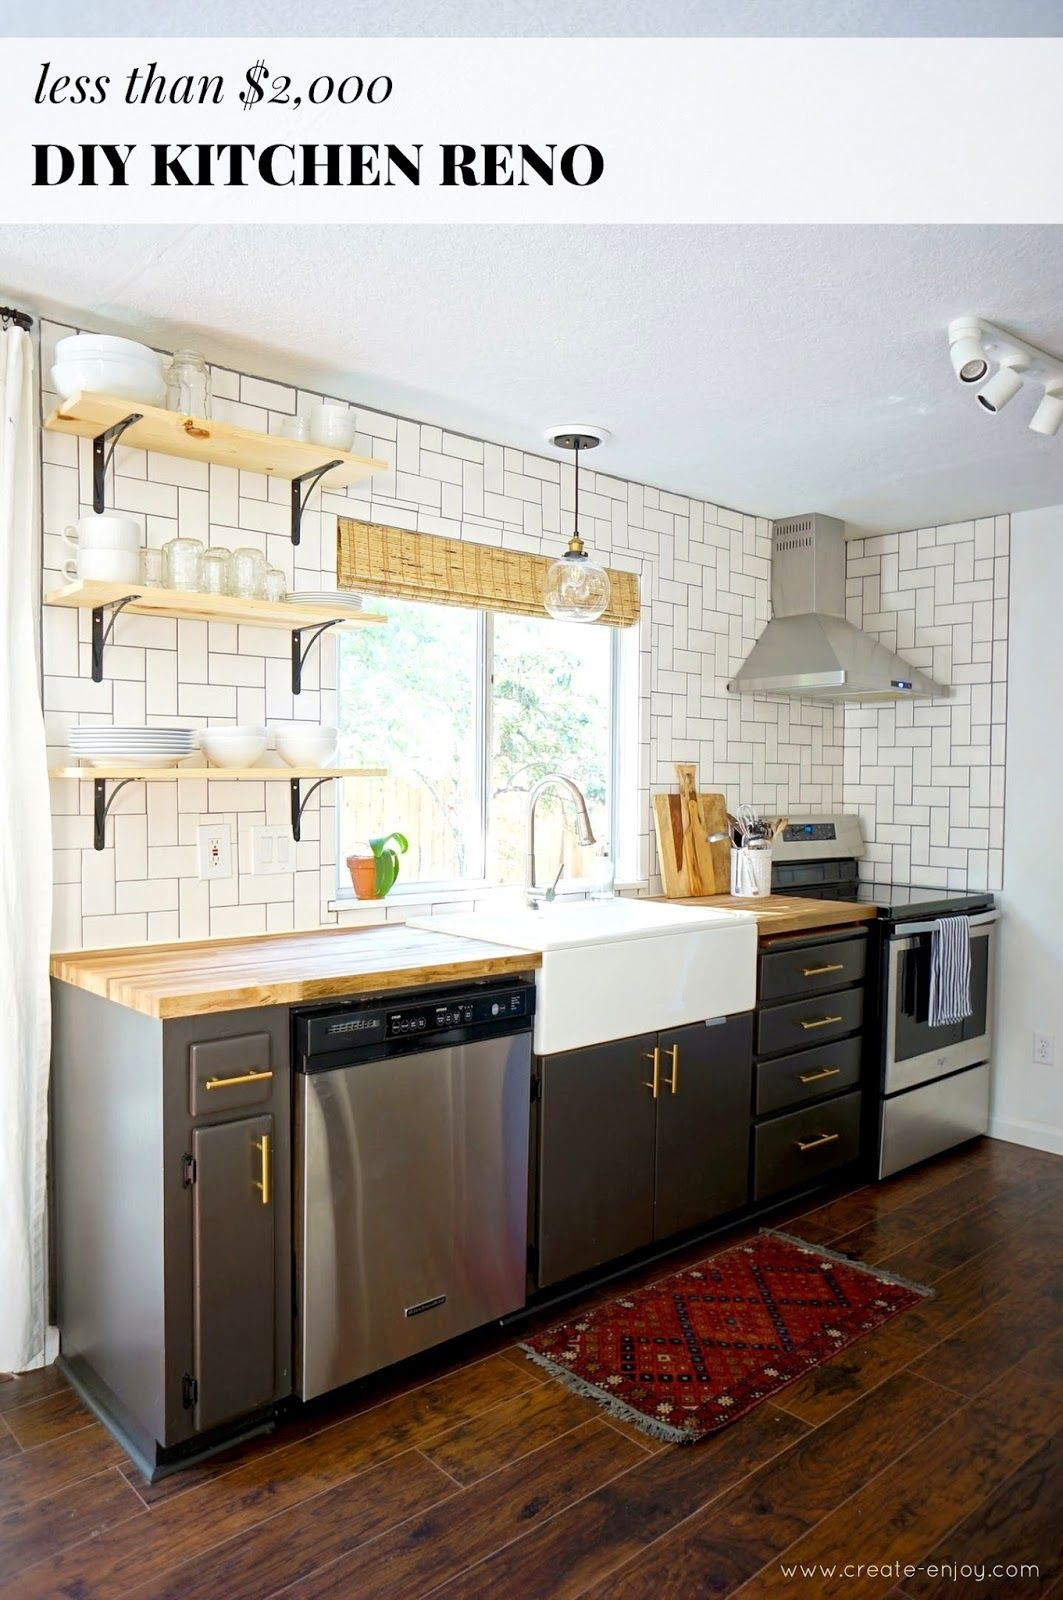 Budget Kitchen Reno Before After Cost And Diys Galley Kitchen Design Galley Kitchen Remodel Kitchen Renovation